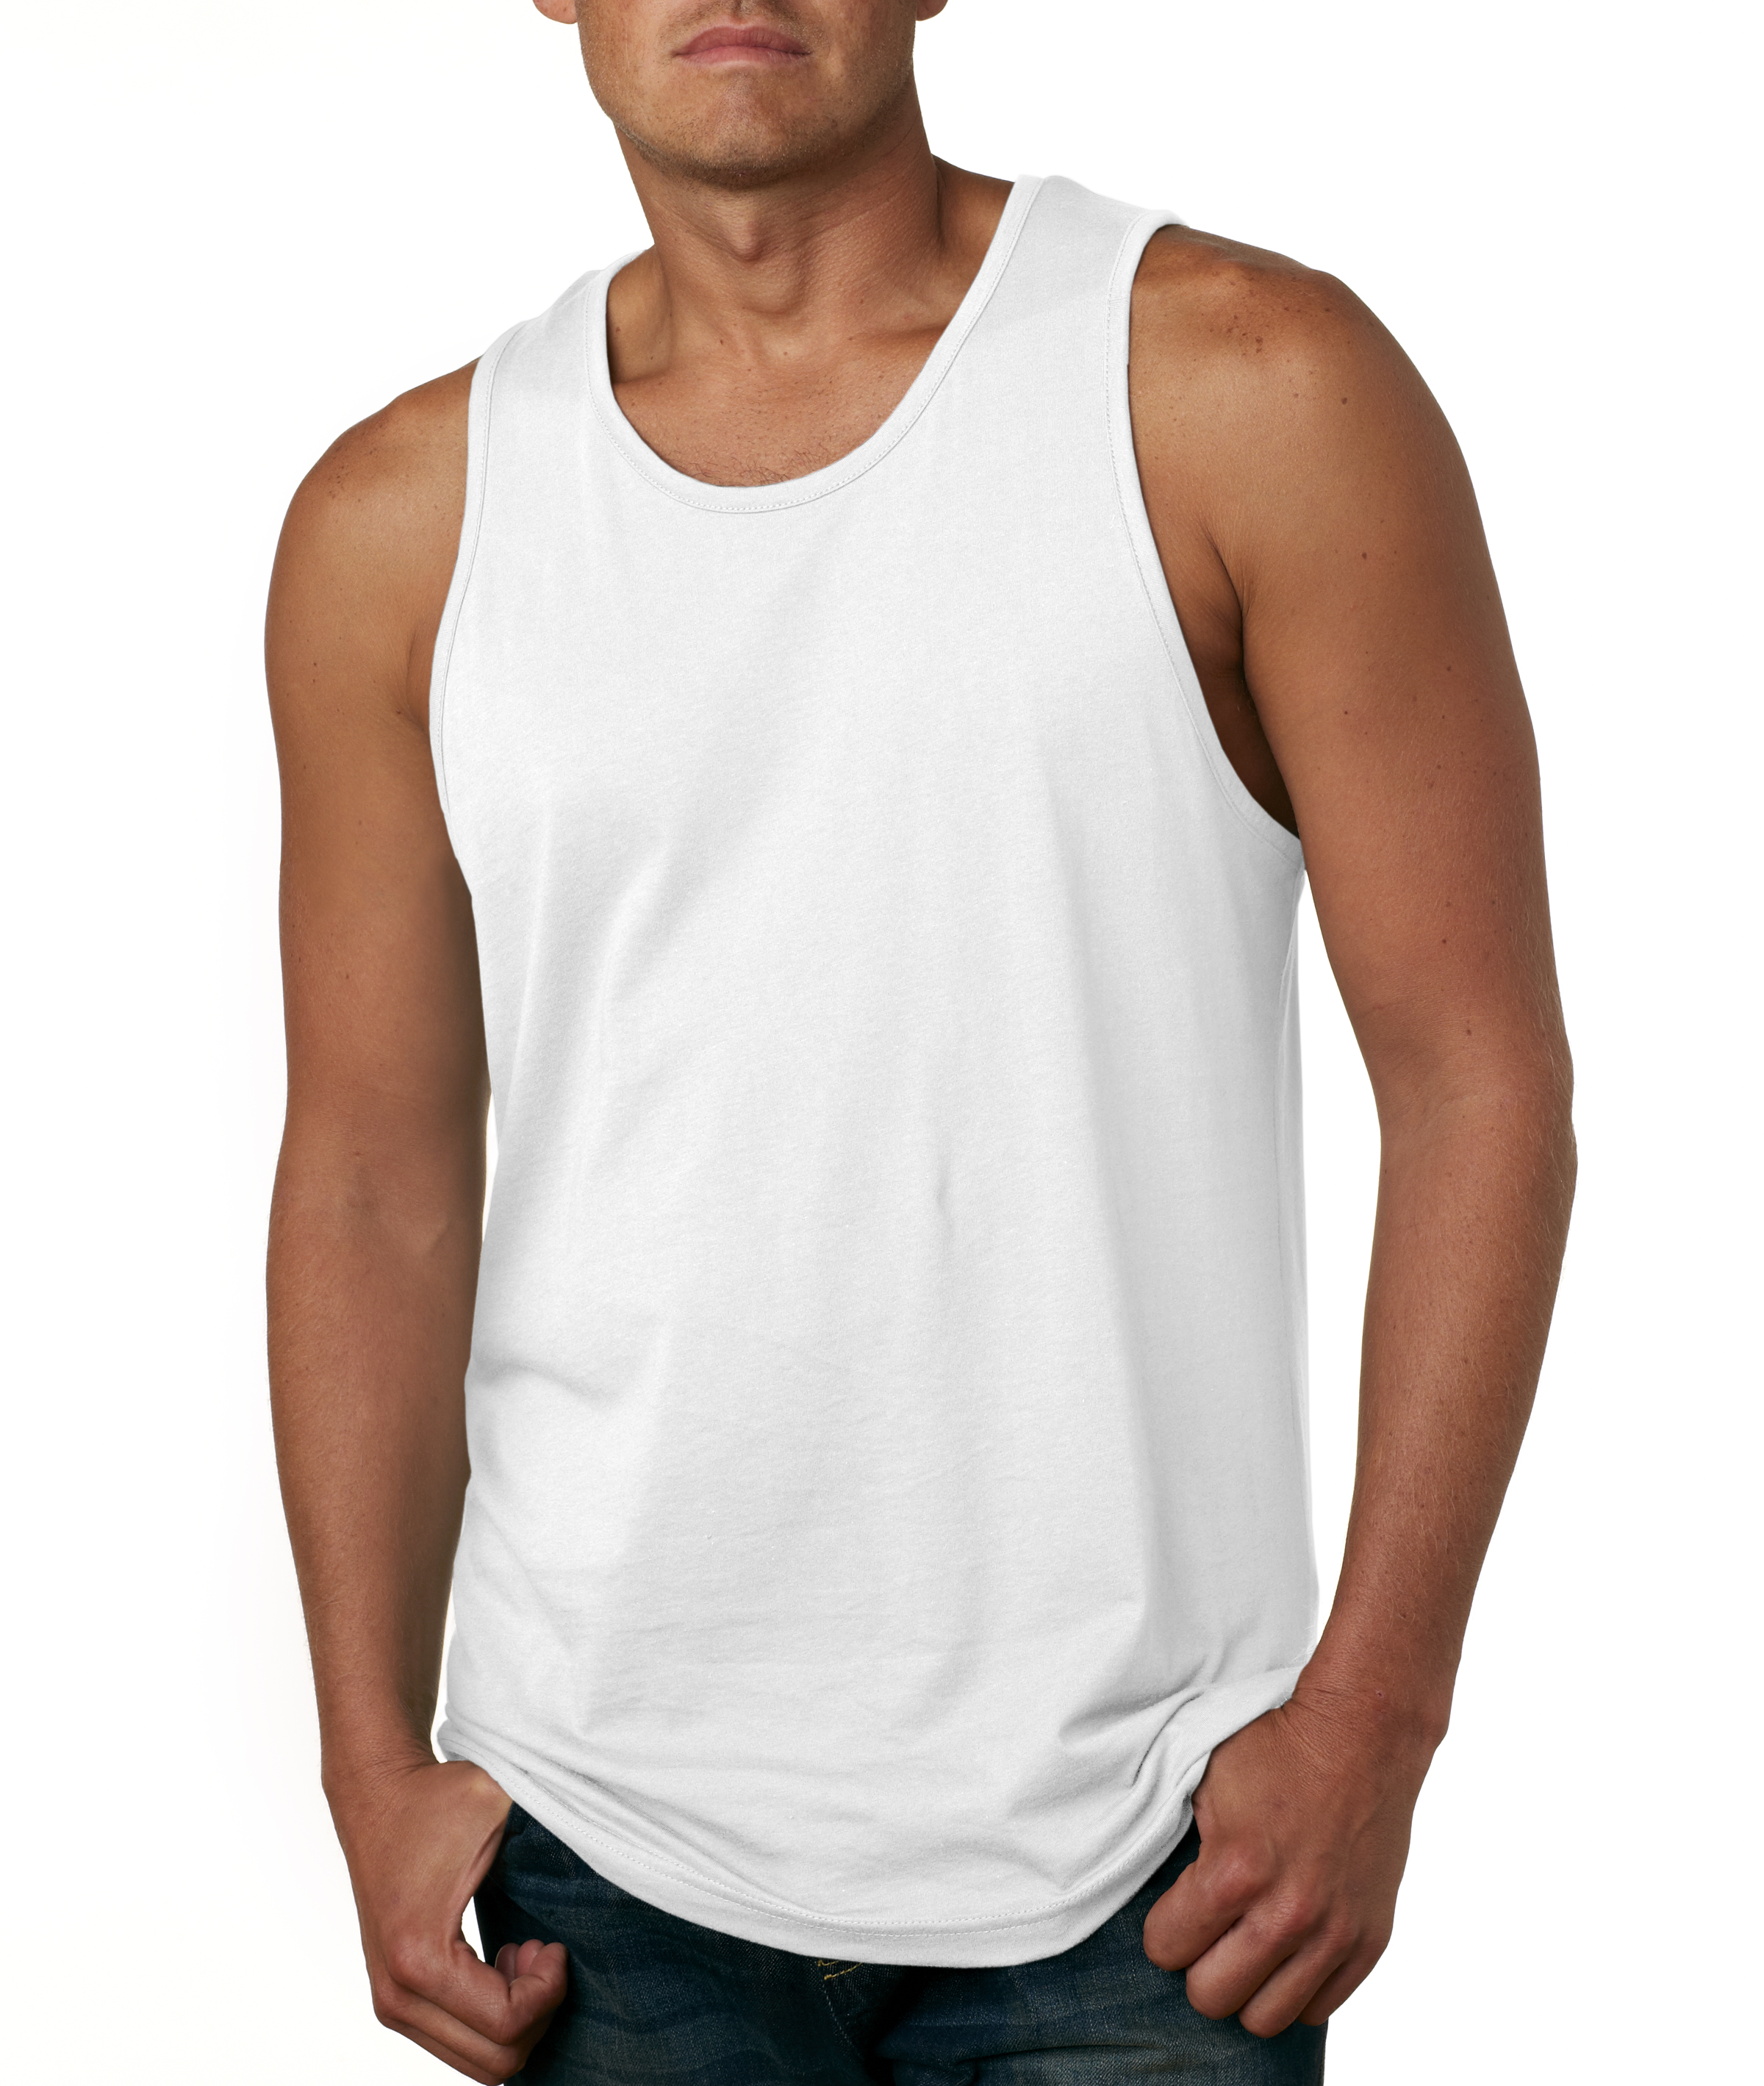 Looking for men's tank tops in printed, solid colors, and a variety of fabrics from all the hottest brands? Shop for men's tank tops now at PacSun and enjoy free shipping on orders over $50!